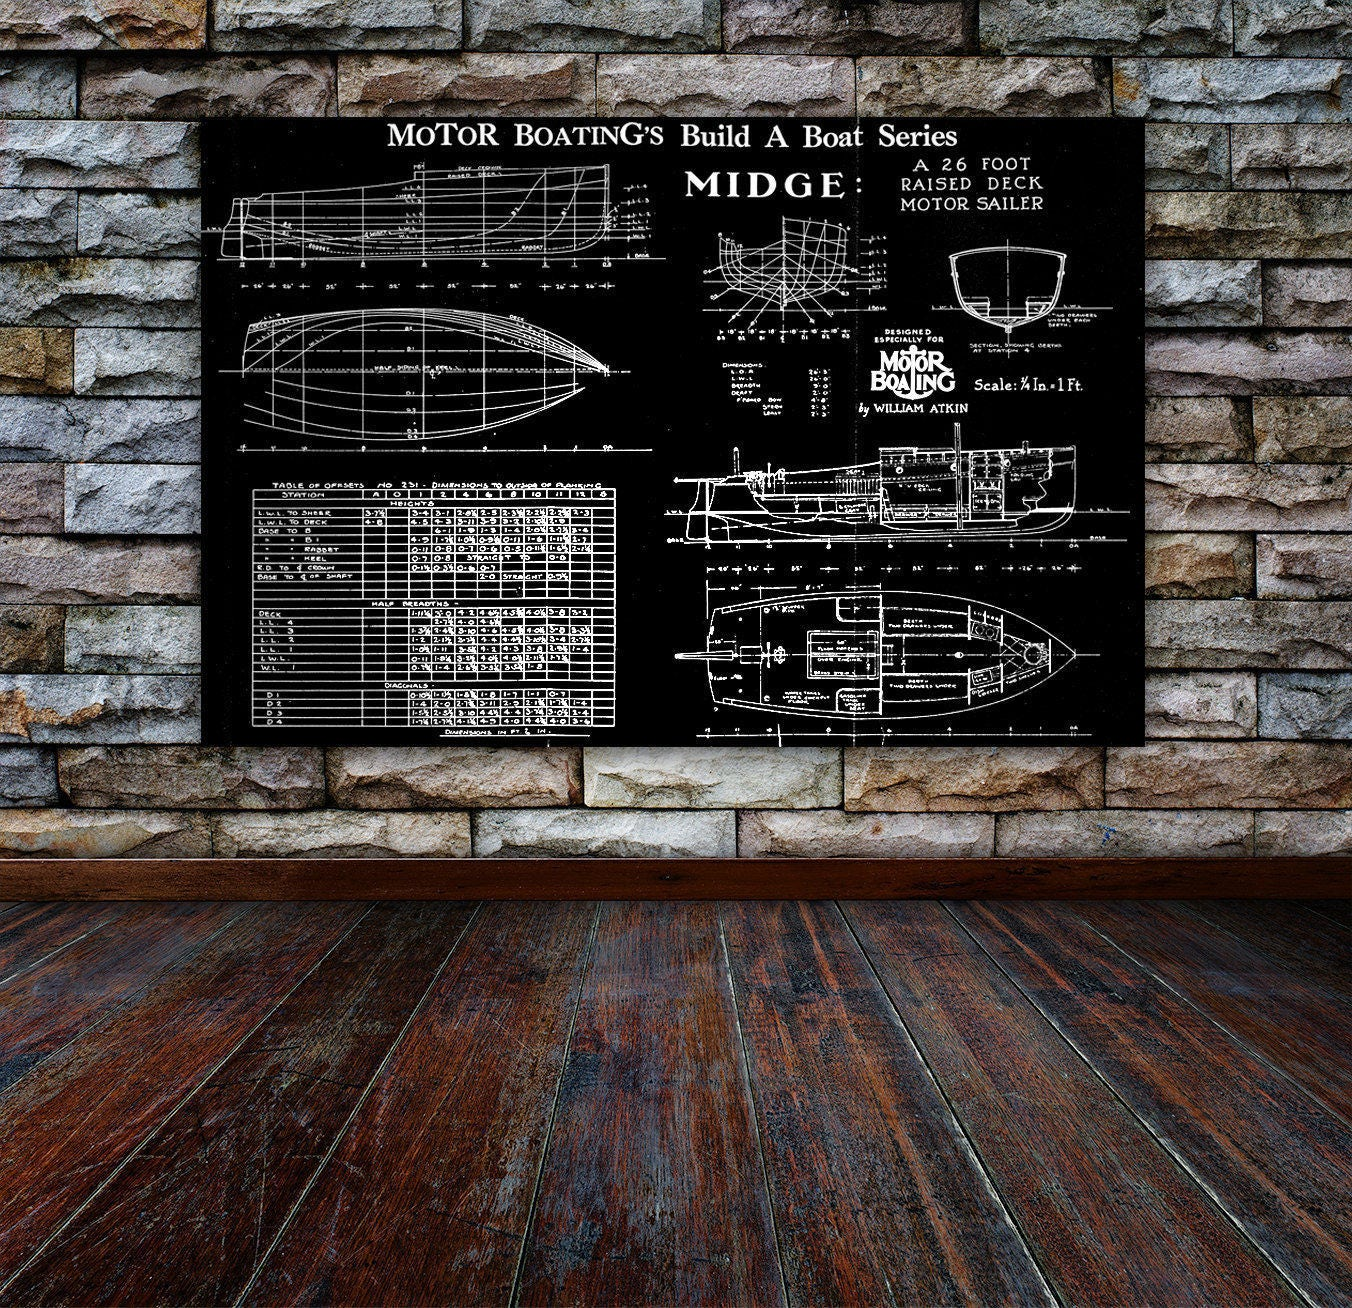 Print of vintage midge boat blueprint from motor boatings build a print of vintage midge boat blueprint from motor boatings build a boat series on your choice of matte paper photo paper or canvas malvernweather Image collections